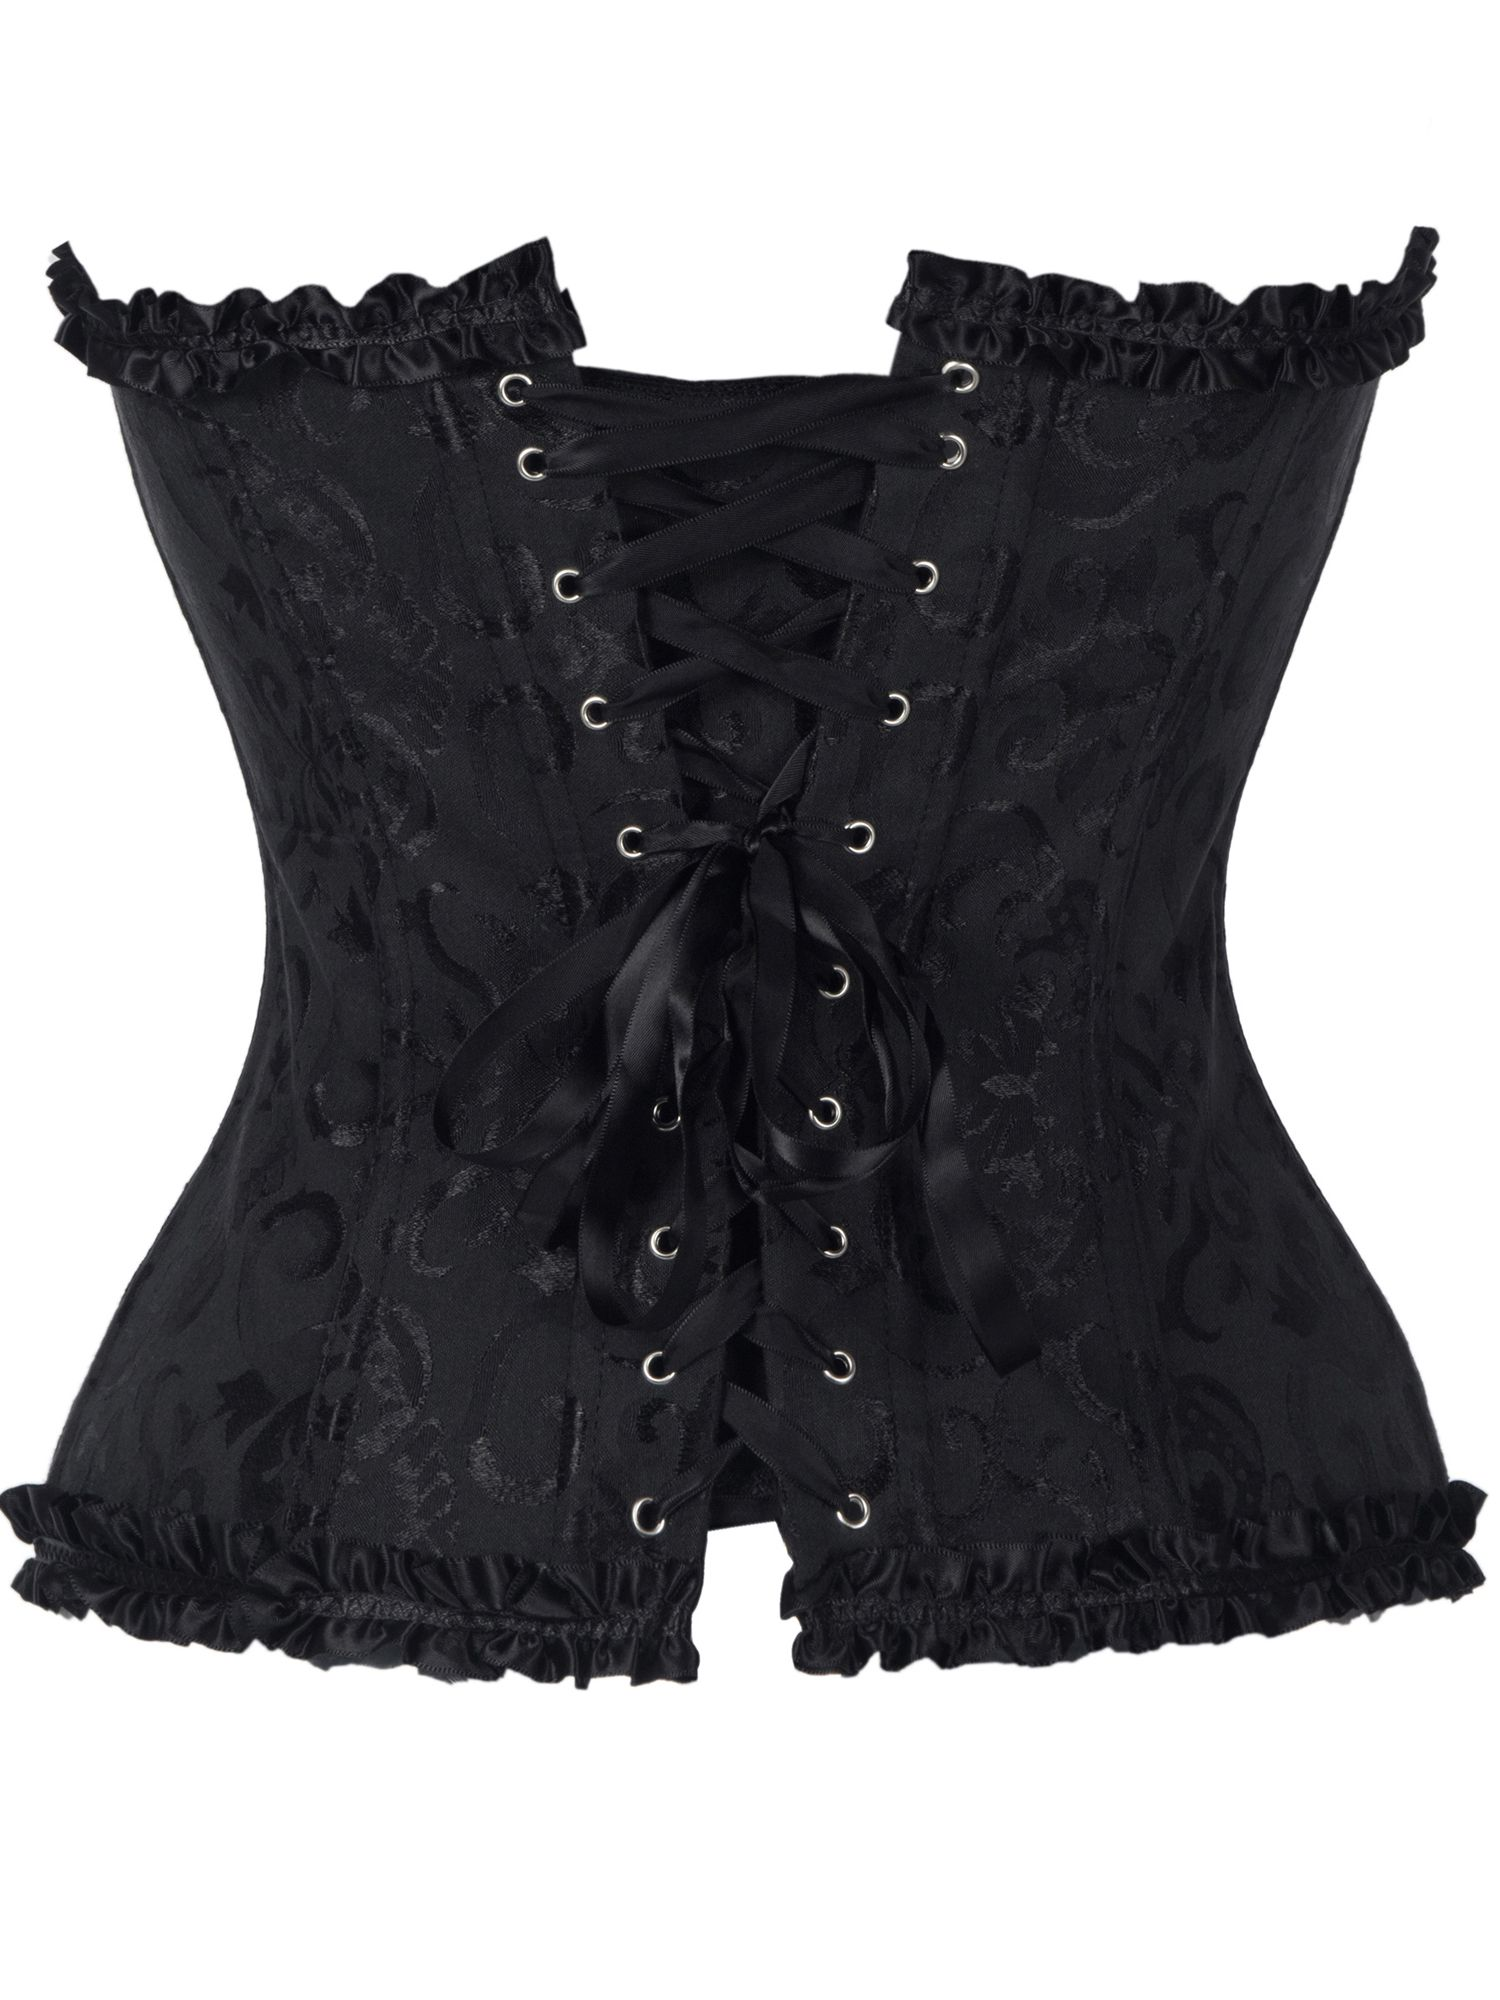 eed89a3879d00 SAYFUT Fashion Women s Lace Up Boned Sexy Overbust Corset Bustier Plus Size  Bodyshaper Top with G-String Black Size S-6XL Boned